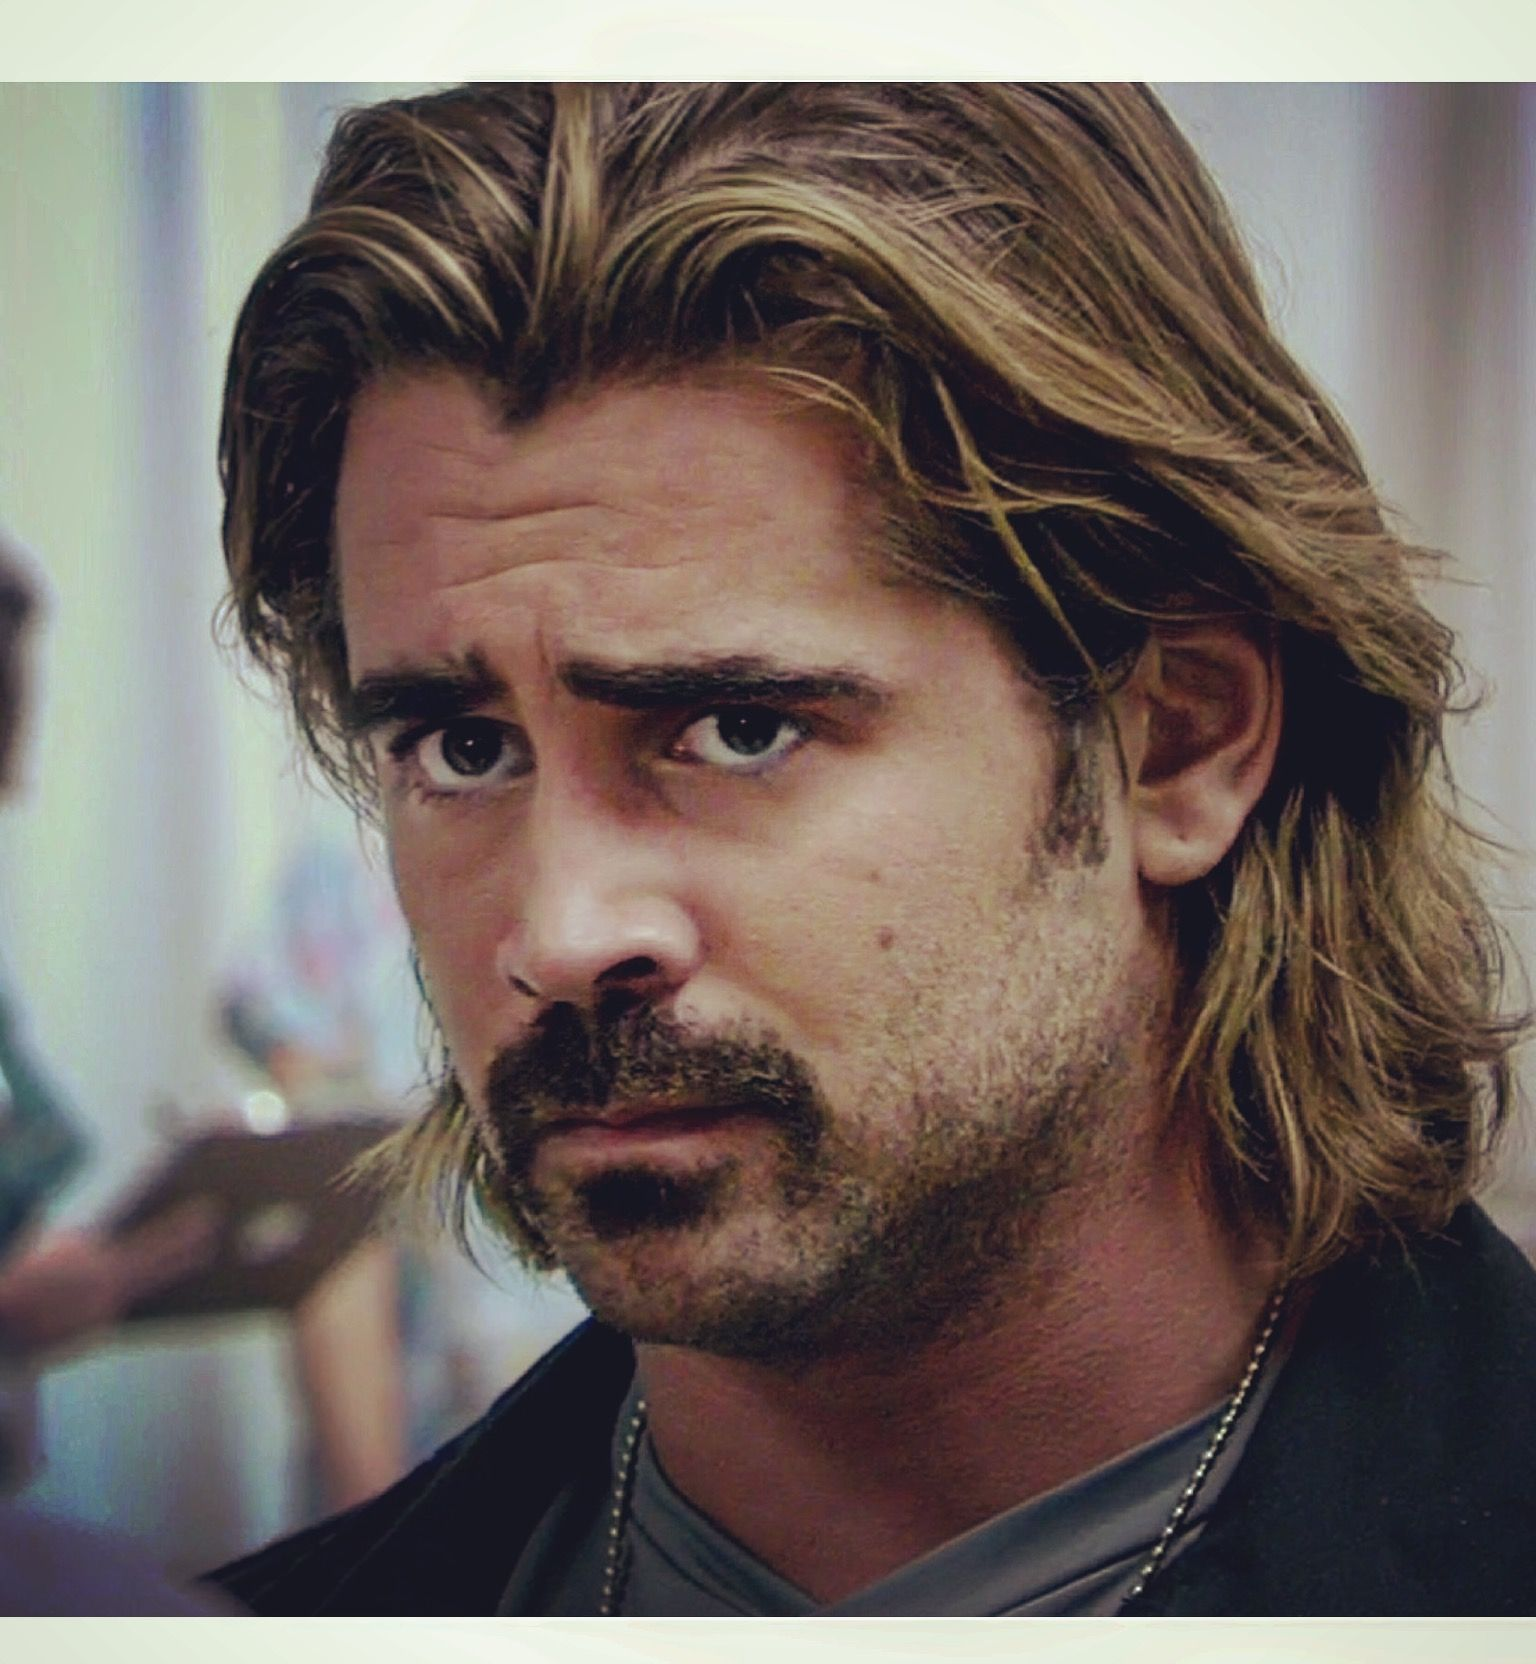 sonny crockett and colin farrell from miami vice | c.f in